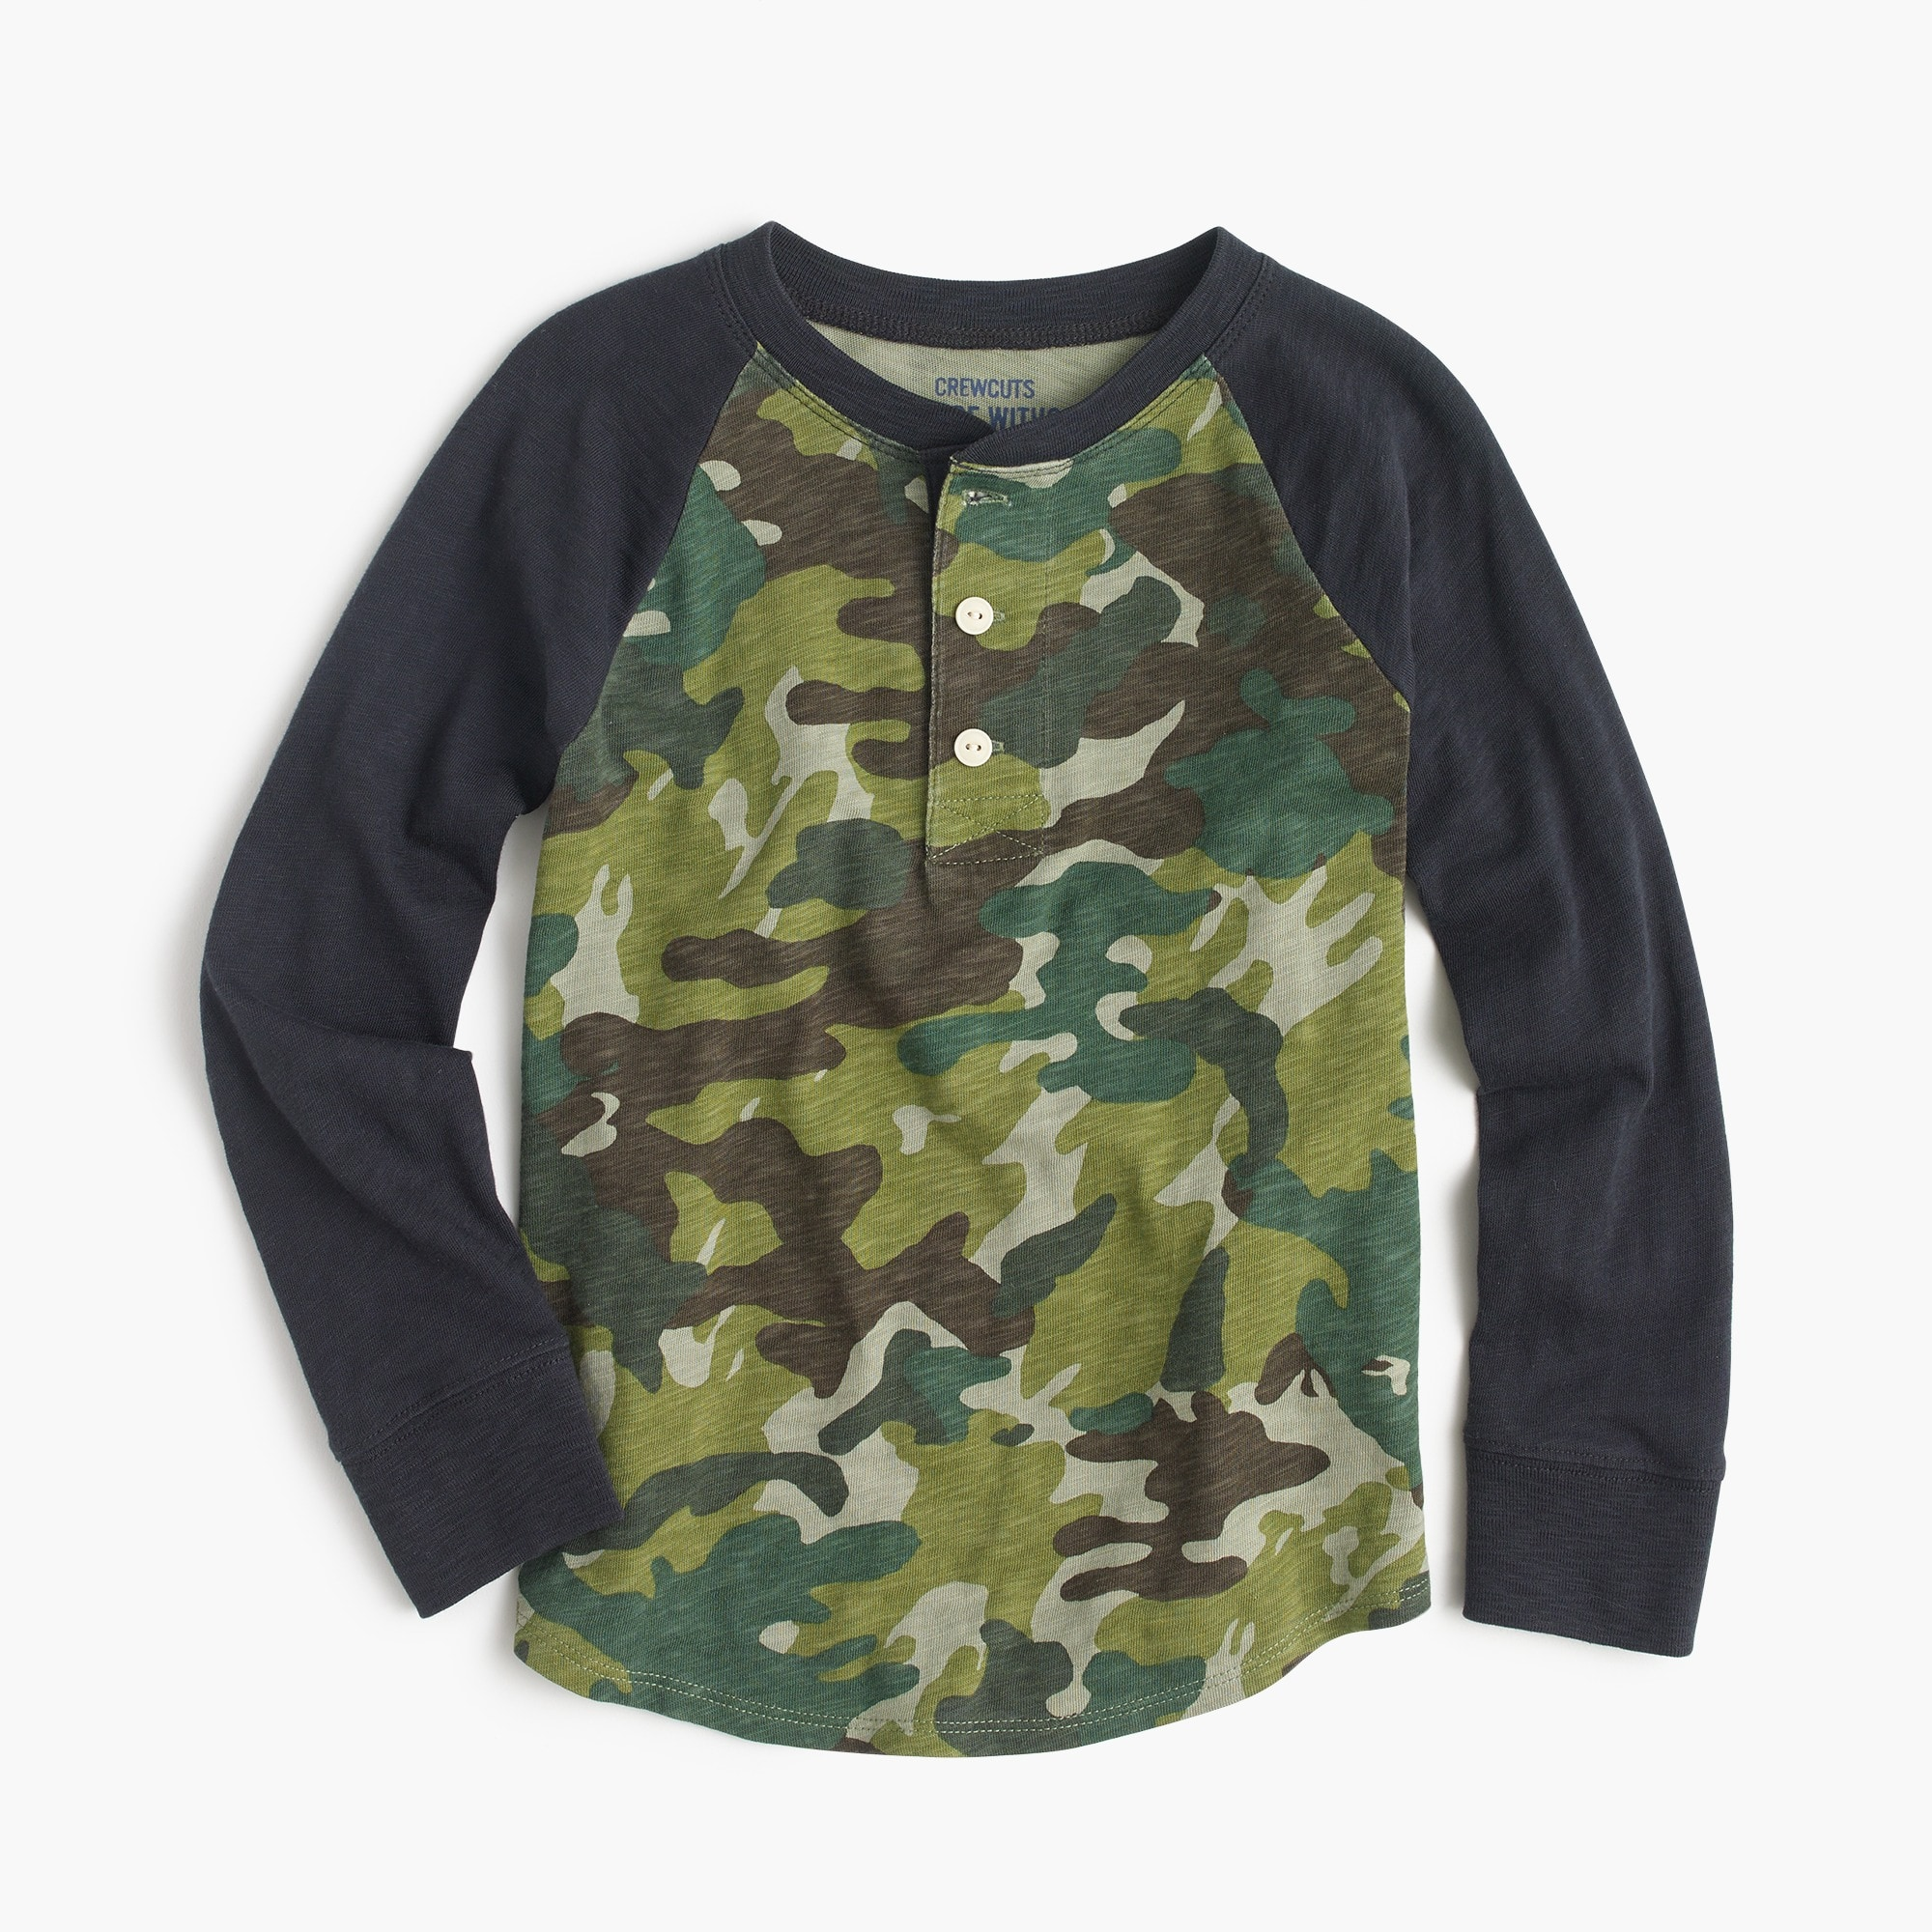 Boys' raglan-sleeve henley shirt in camo print